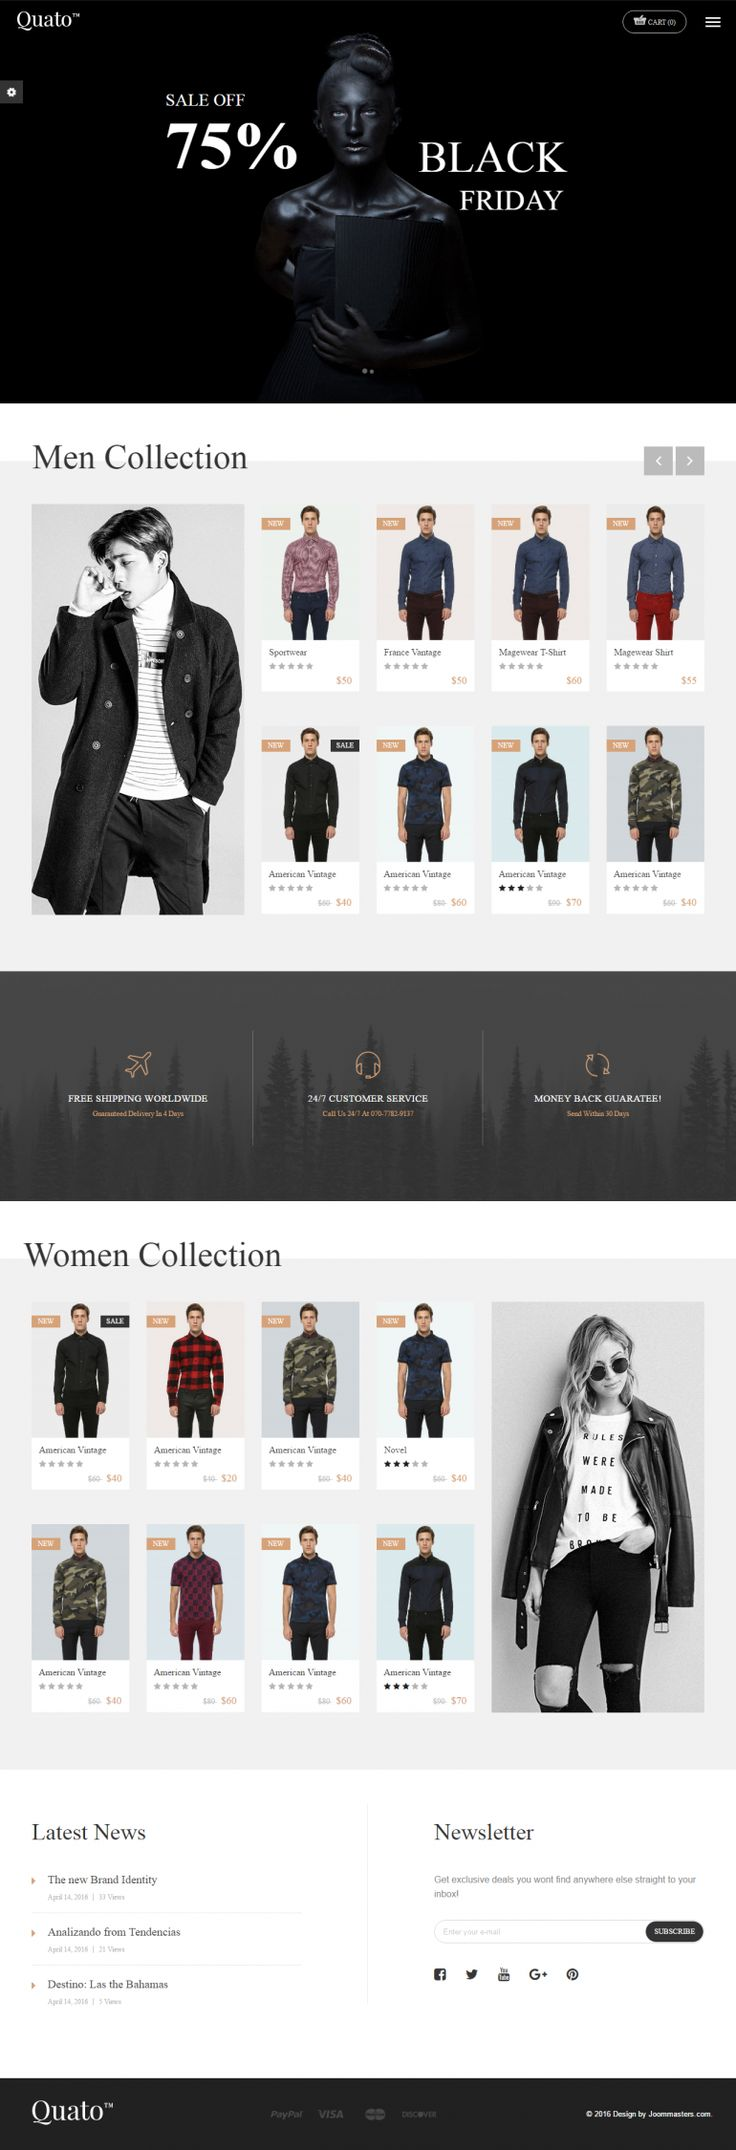 78 best Websites: E-Commerce images on Pinterest | Ecommerce ...